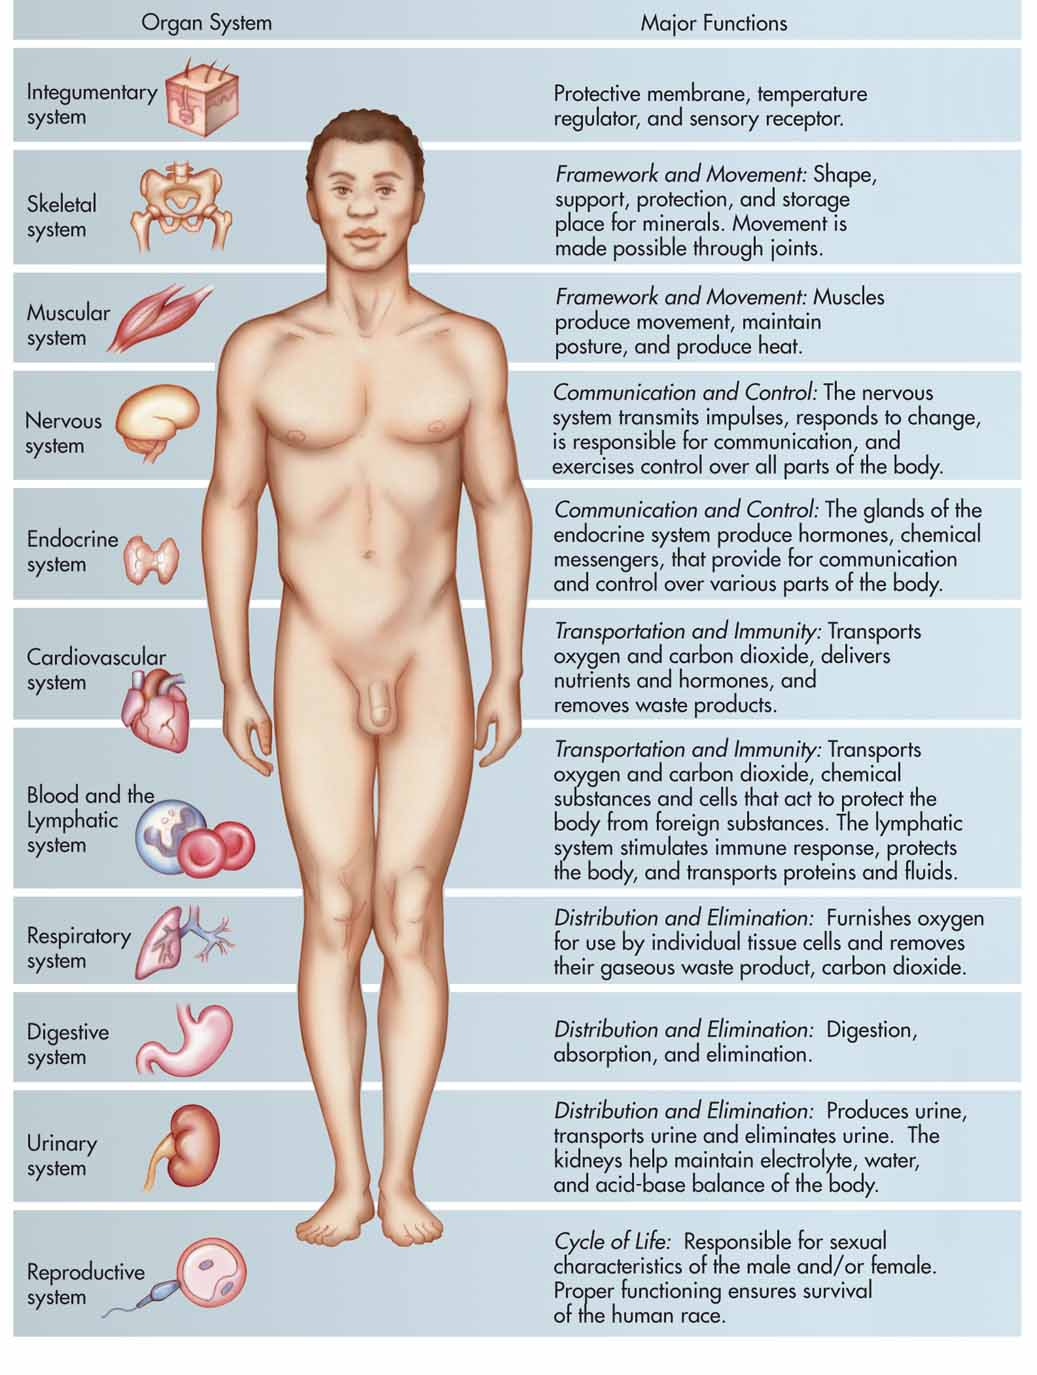 what are the major organ systems of the body